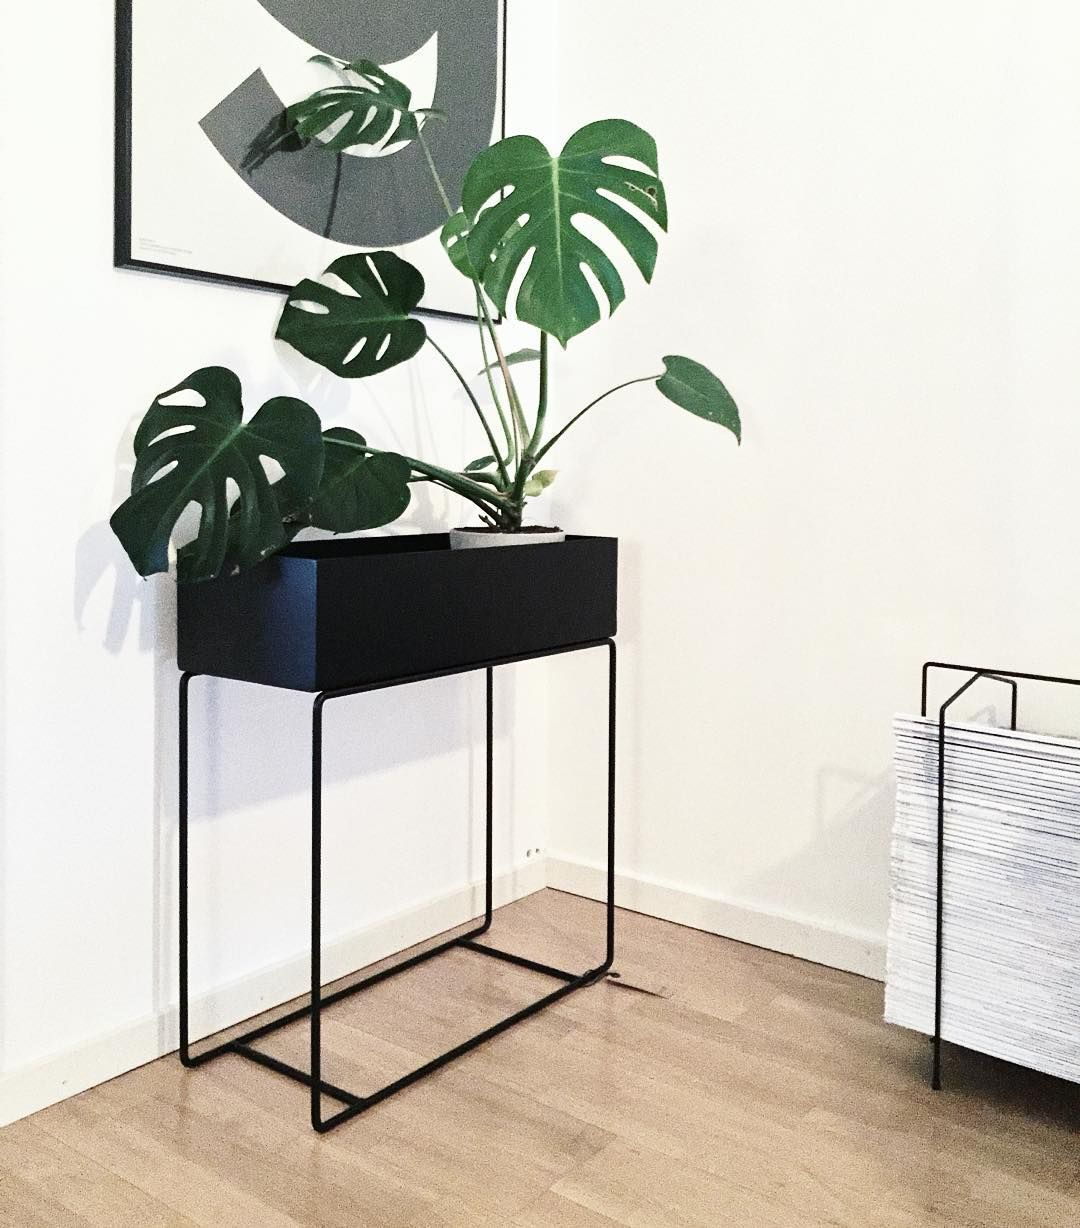 Captivating Ferm LIVING Plant Box Black: Http://www.fermliving.com/